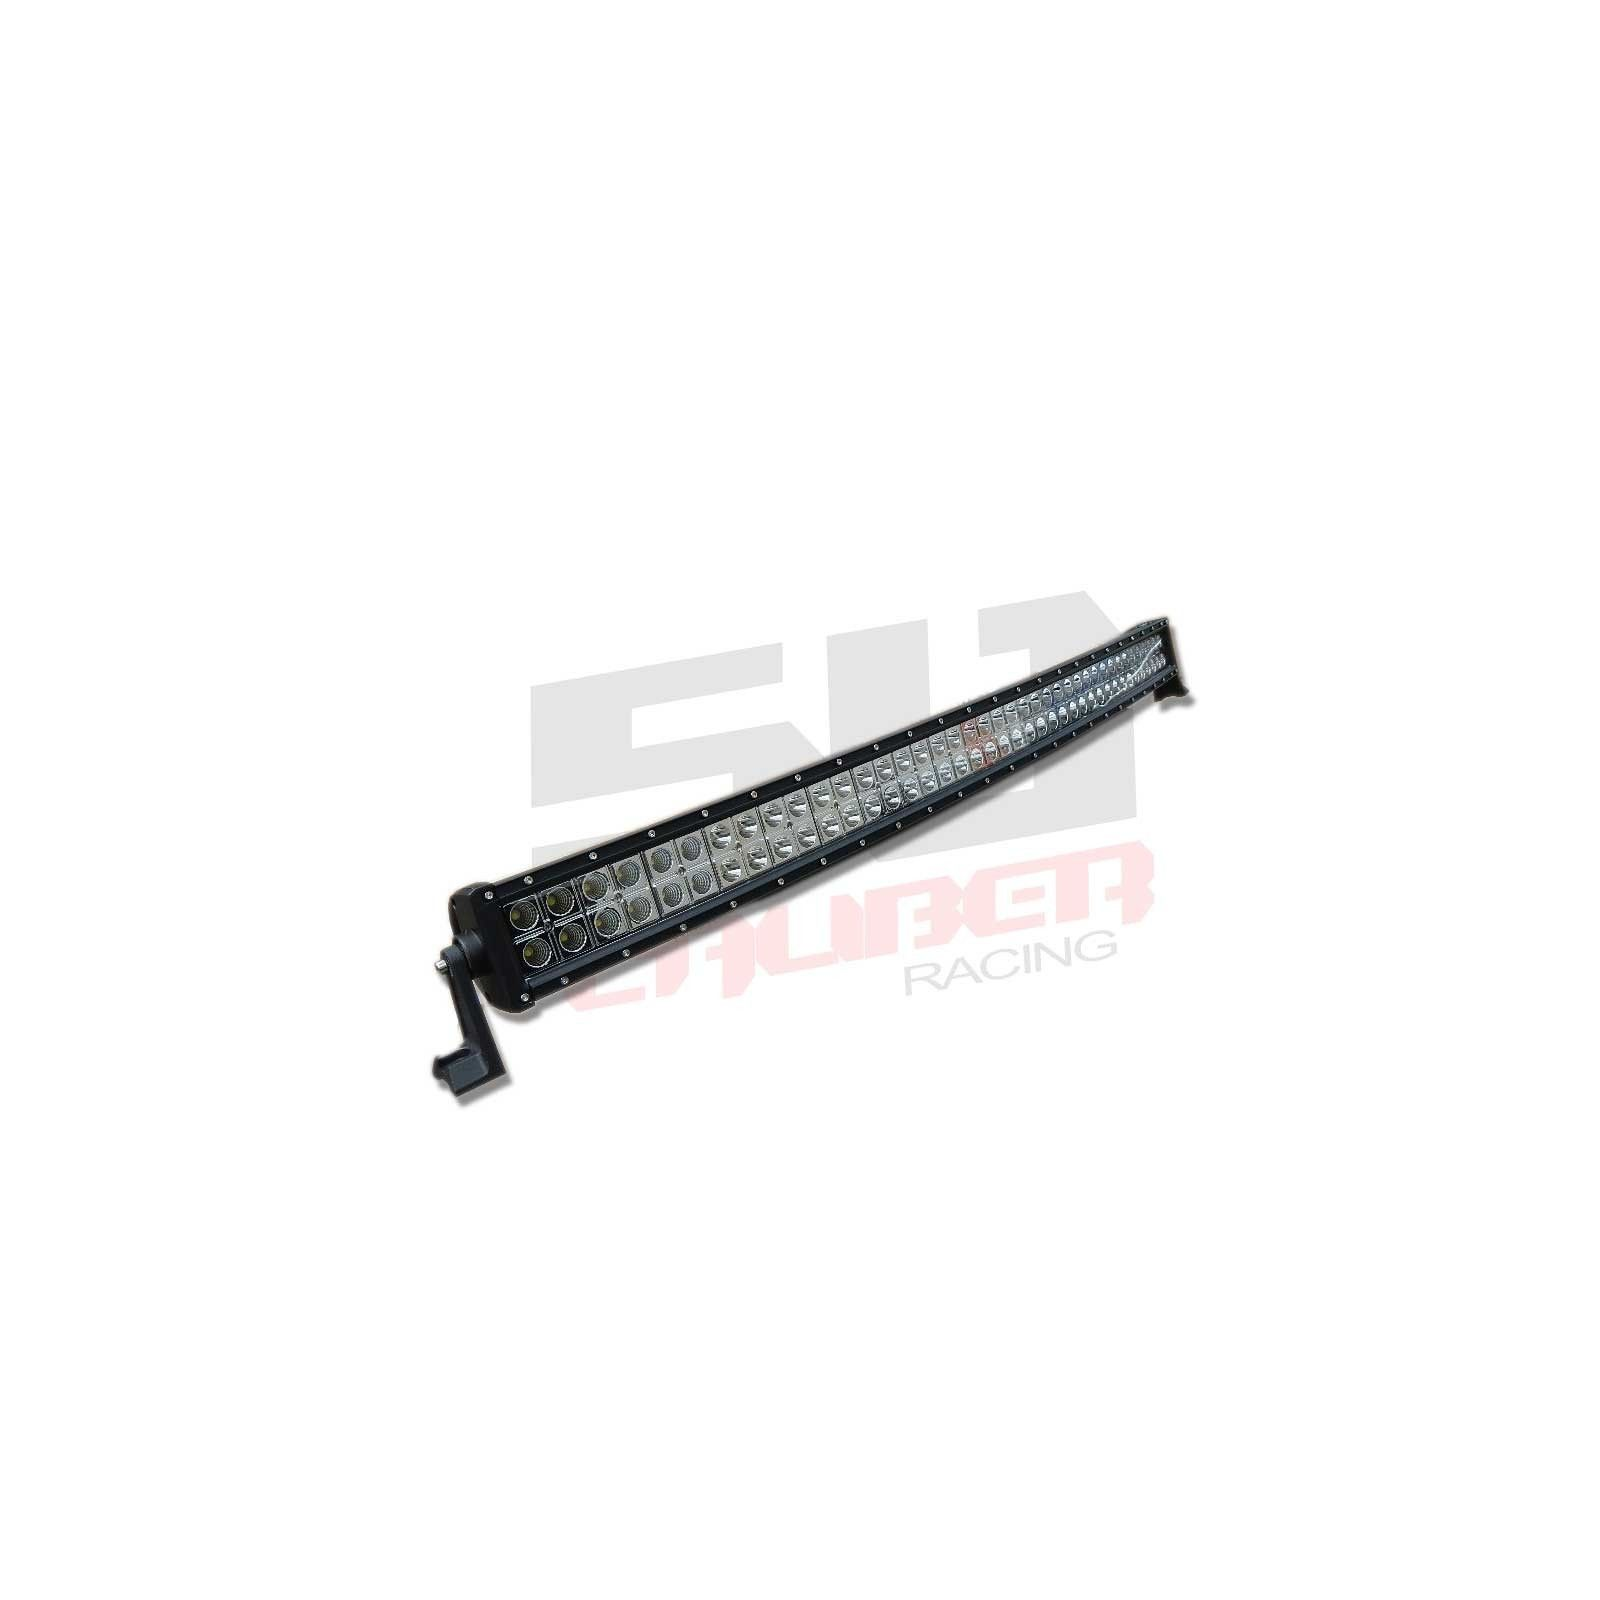 40 Inch Curved Led Light Bar